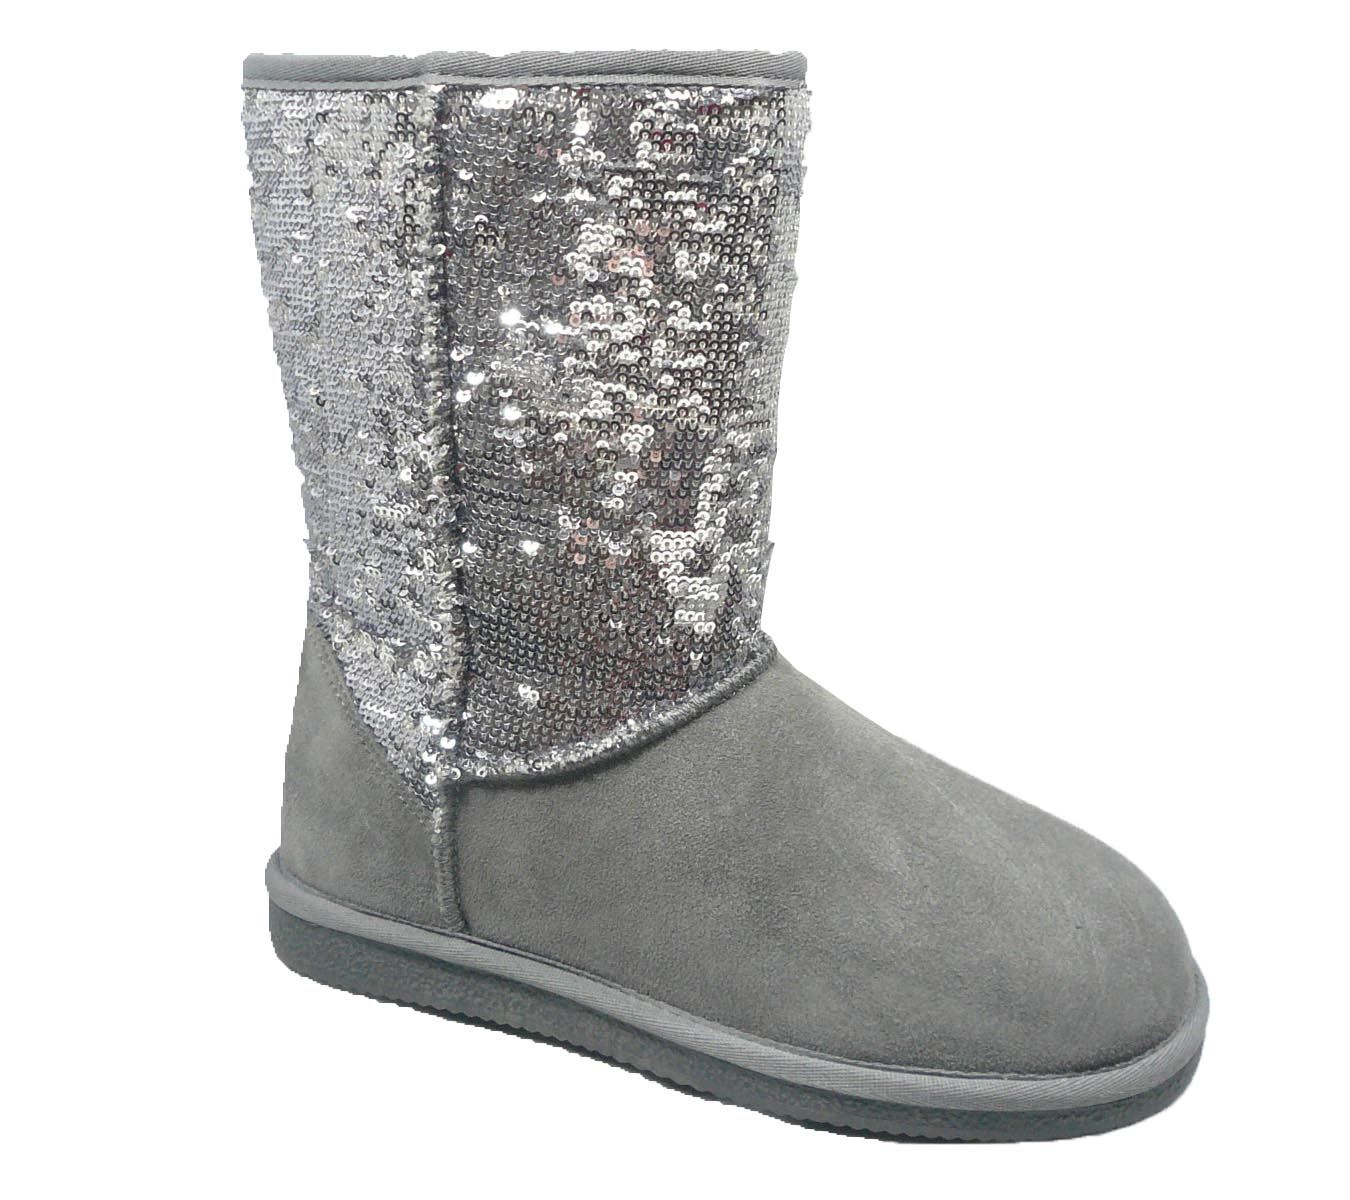 805407d461e Pin by Me and My Feet on Lamo Sheepskin Footwear | Shoes, Boots ...